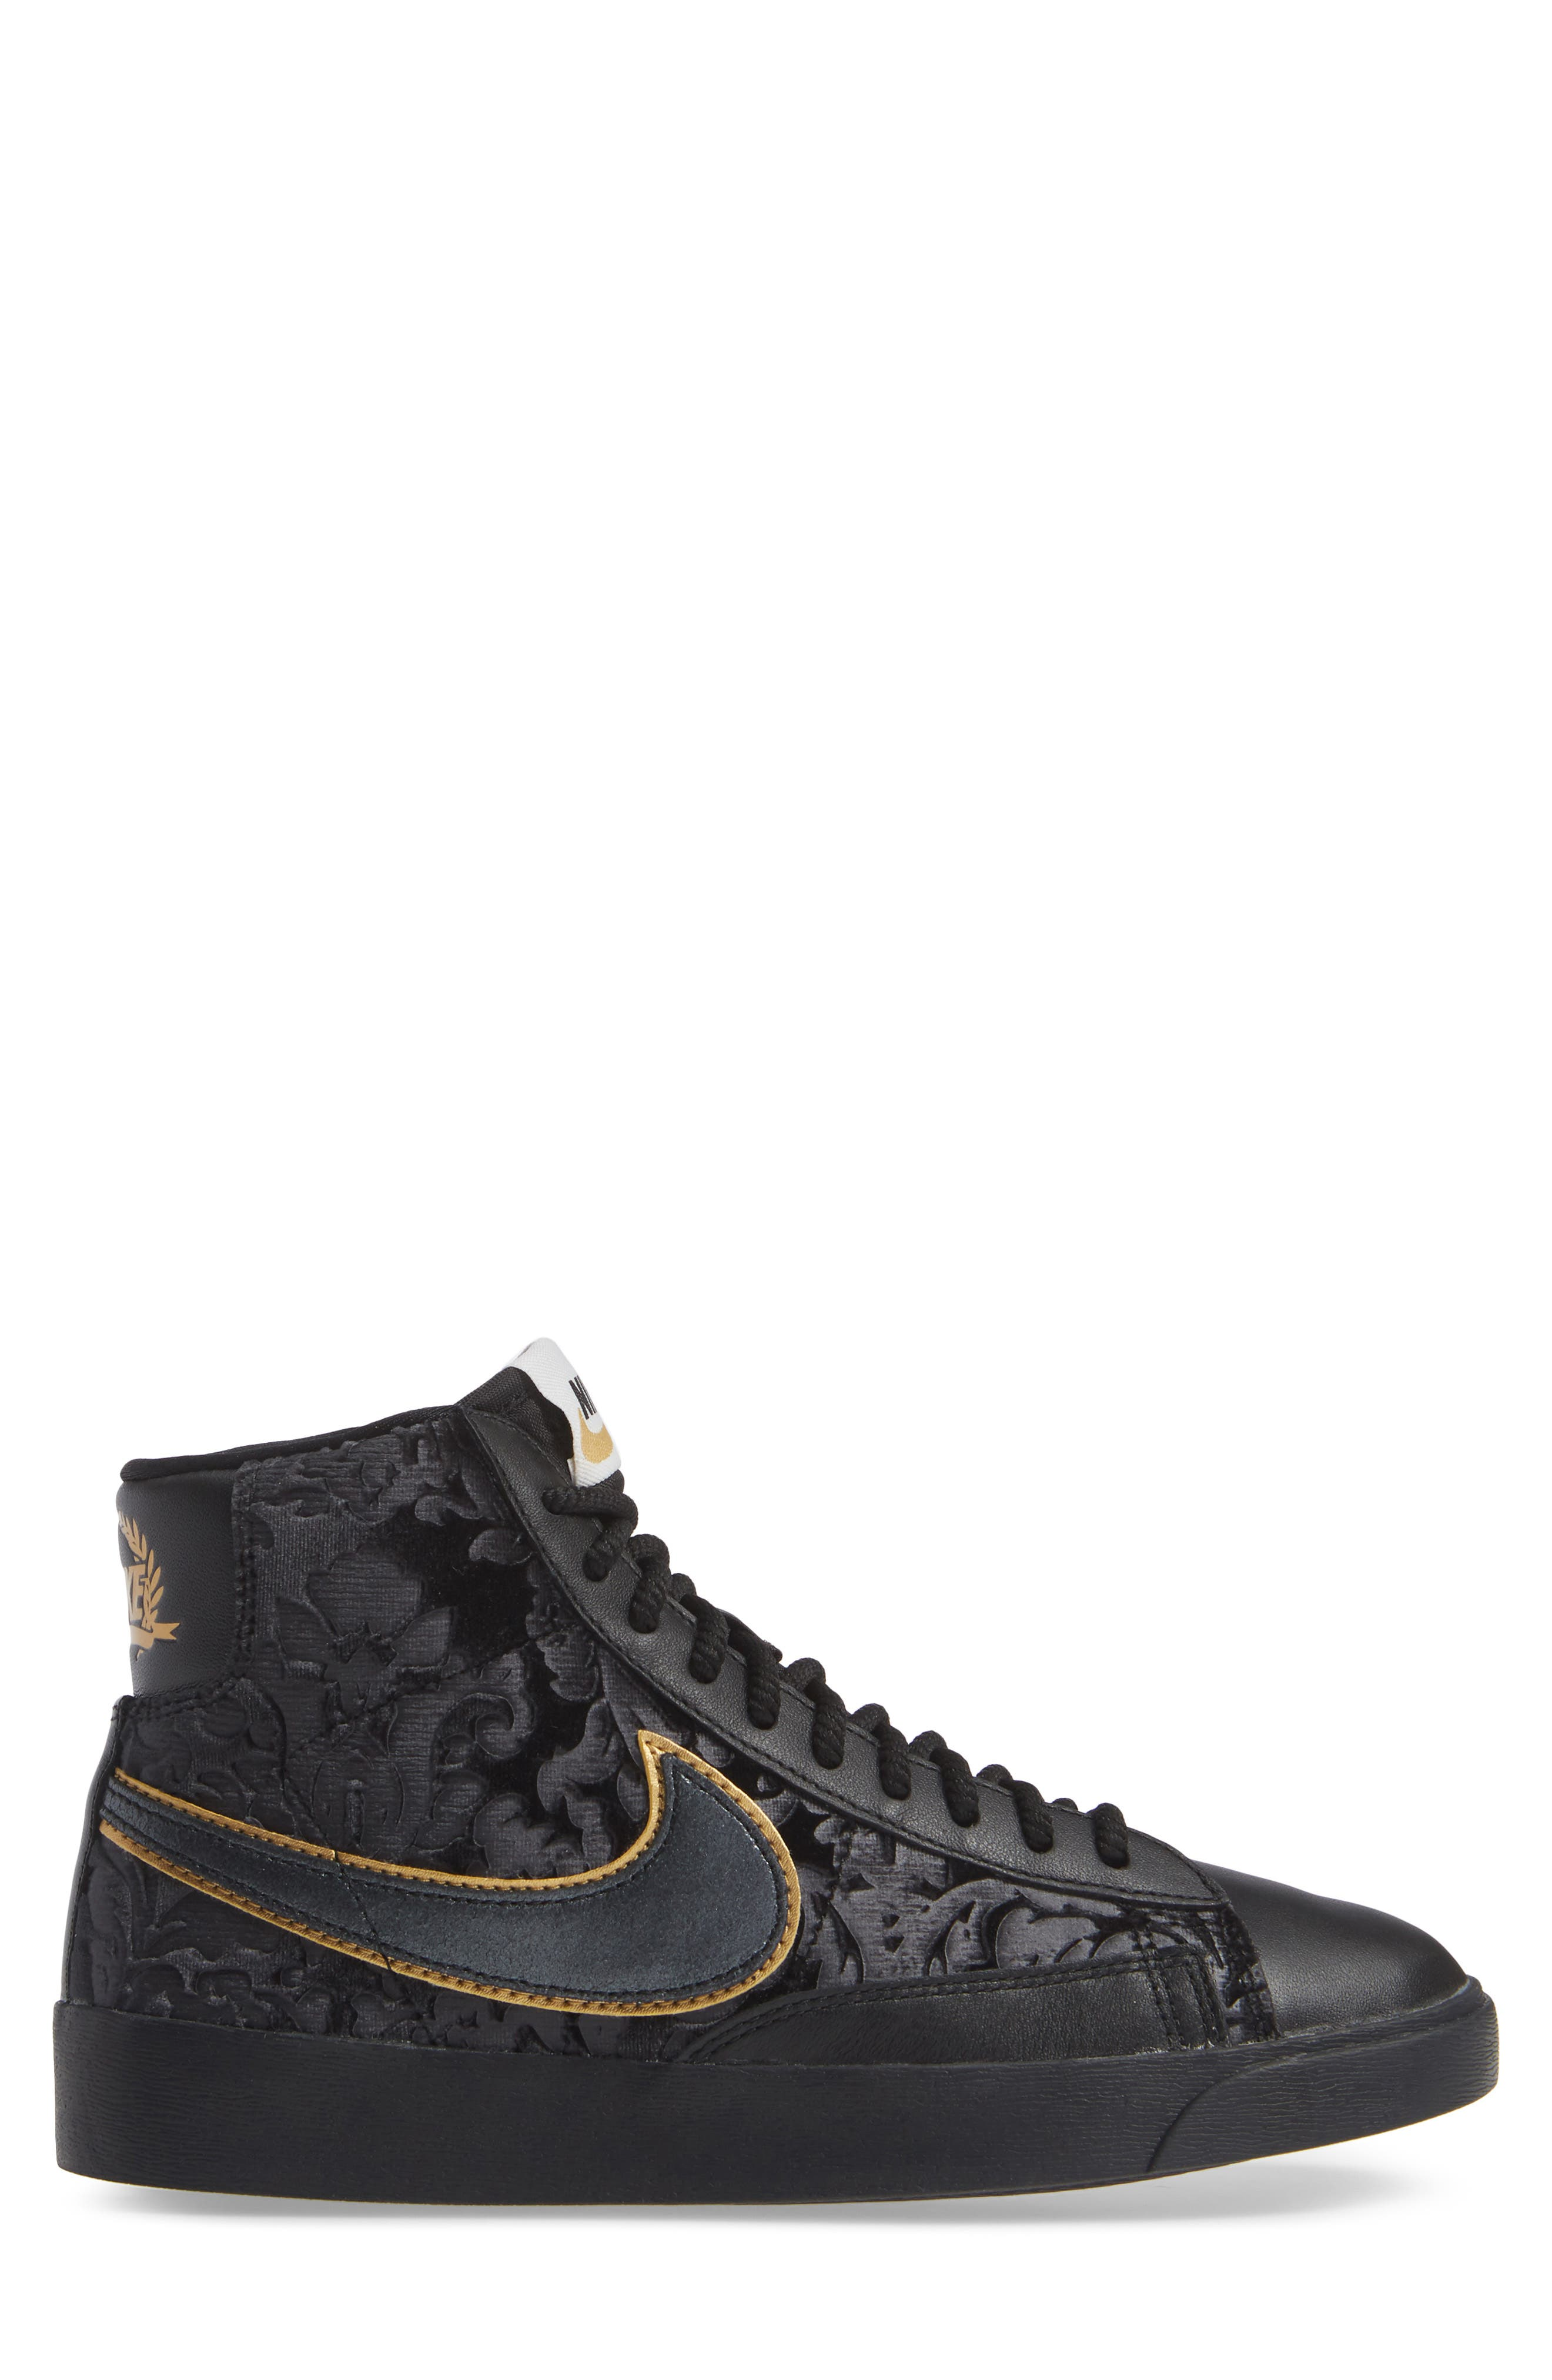 Blazer Mid Top Sneaker,                             Alternate thumbnail 3, color,                             BLACK/ GOLD/ SUMMIT WHITE